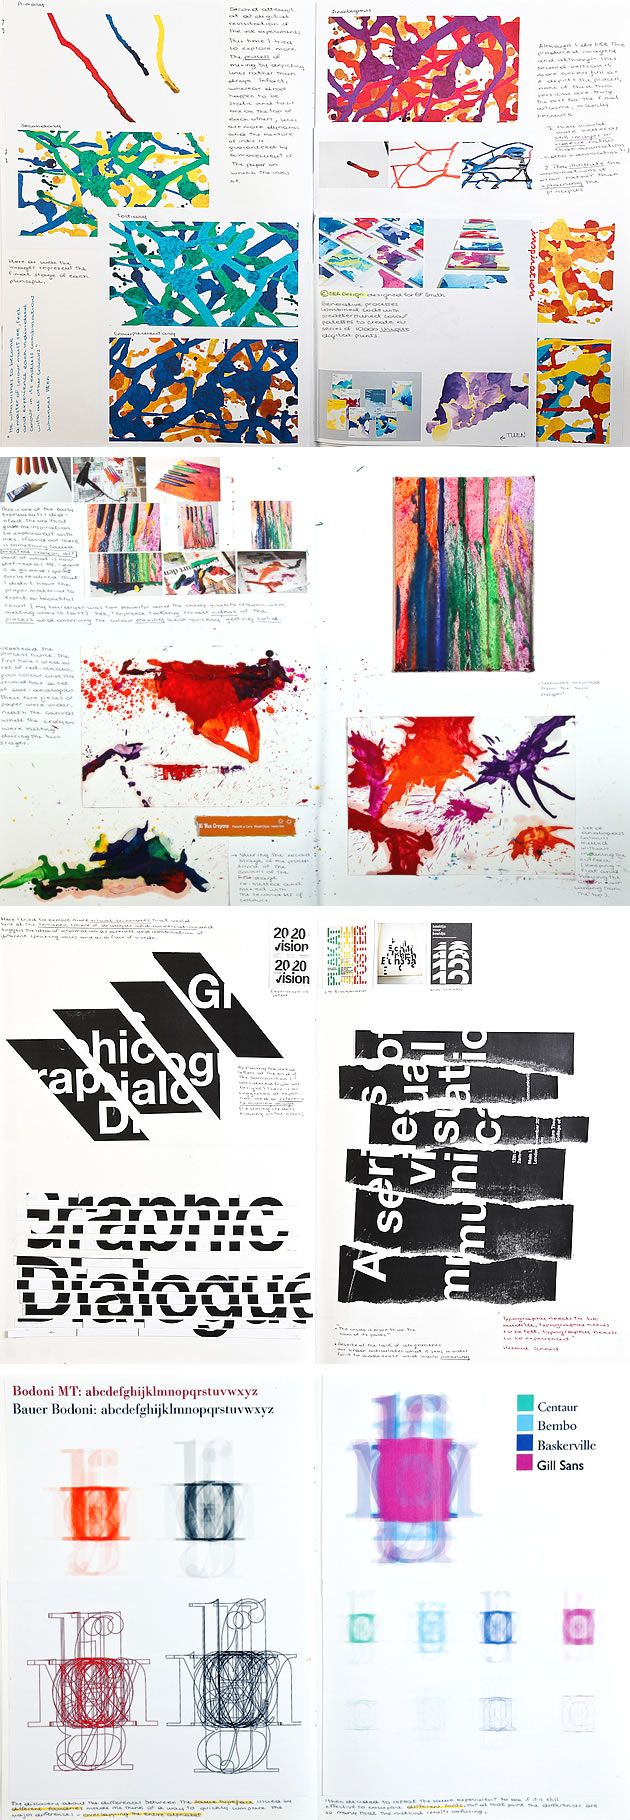 Graphic Design Sketchbook Ideas – 22 Inspirational Examples ...